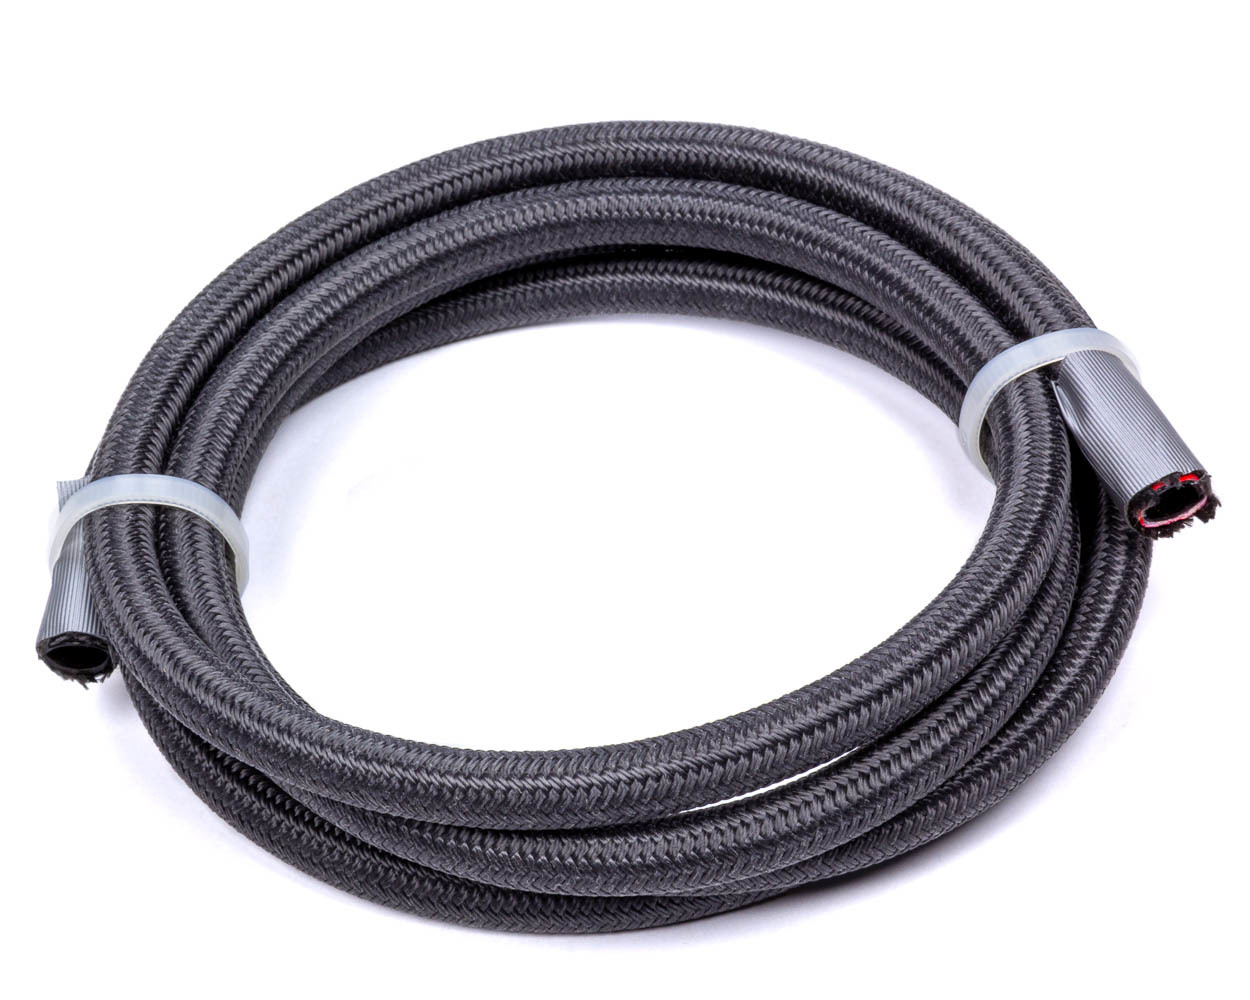 Fragola 2701504 Hose, 4 AN, 15 ft, Braided Fire Retardant Fabric, PTFE, Black, Each